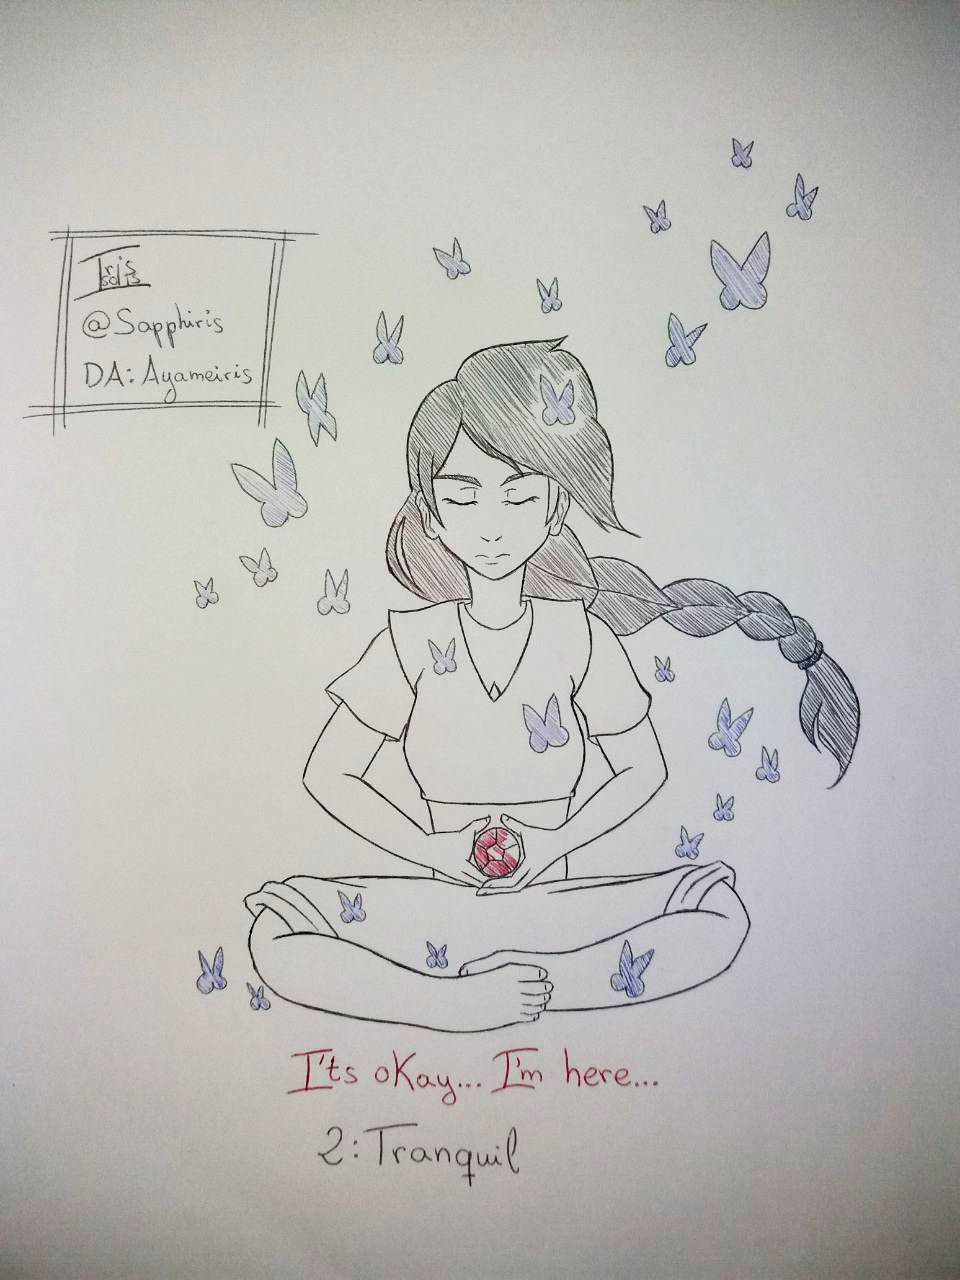 [Imagen: inktober_2018___2_tranquil_by_ayameiris-dcodc3a.png]